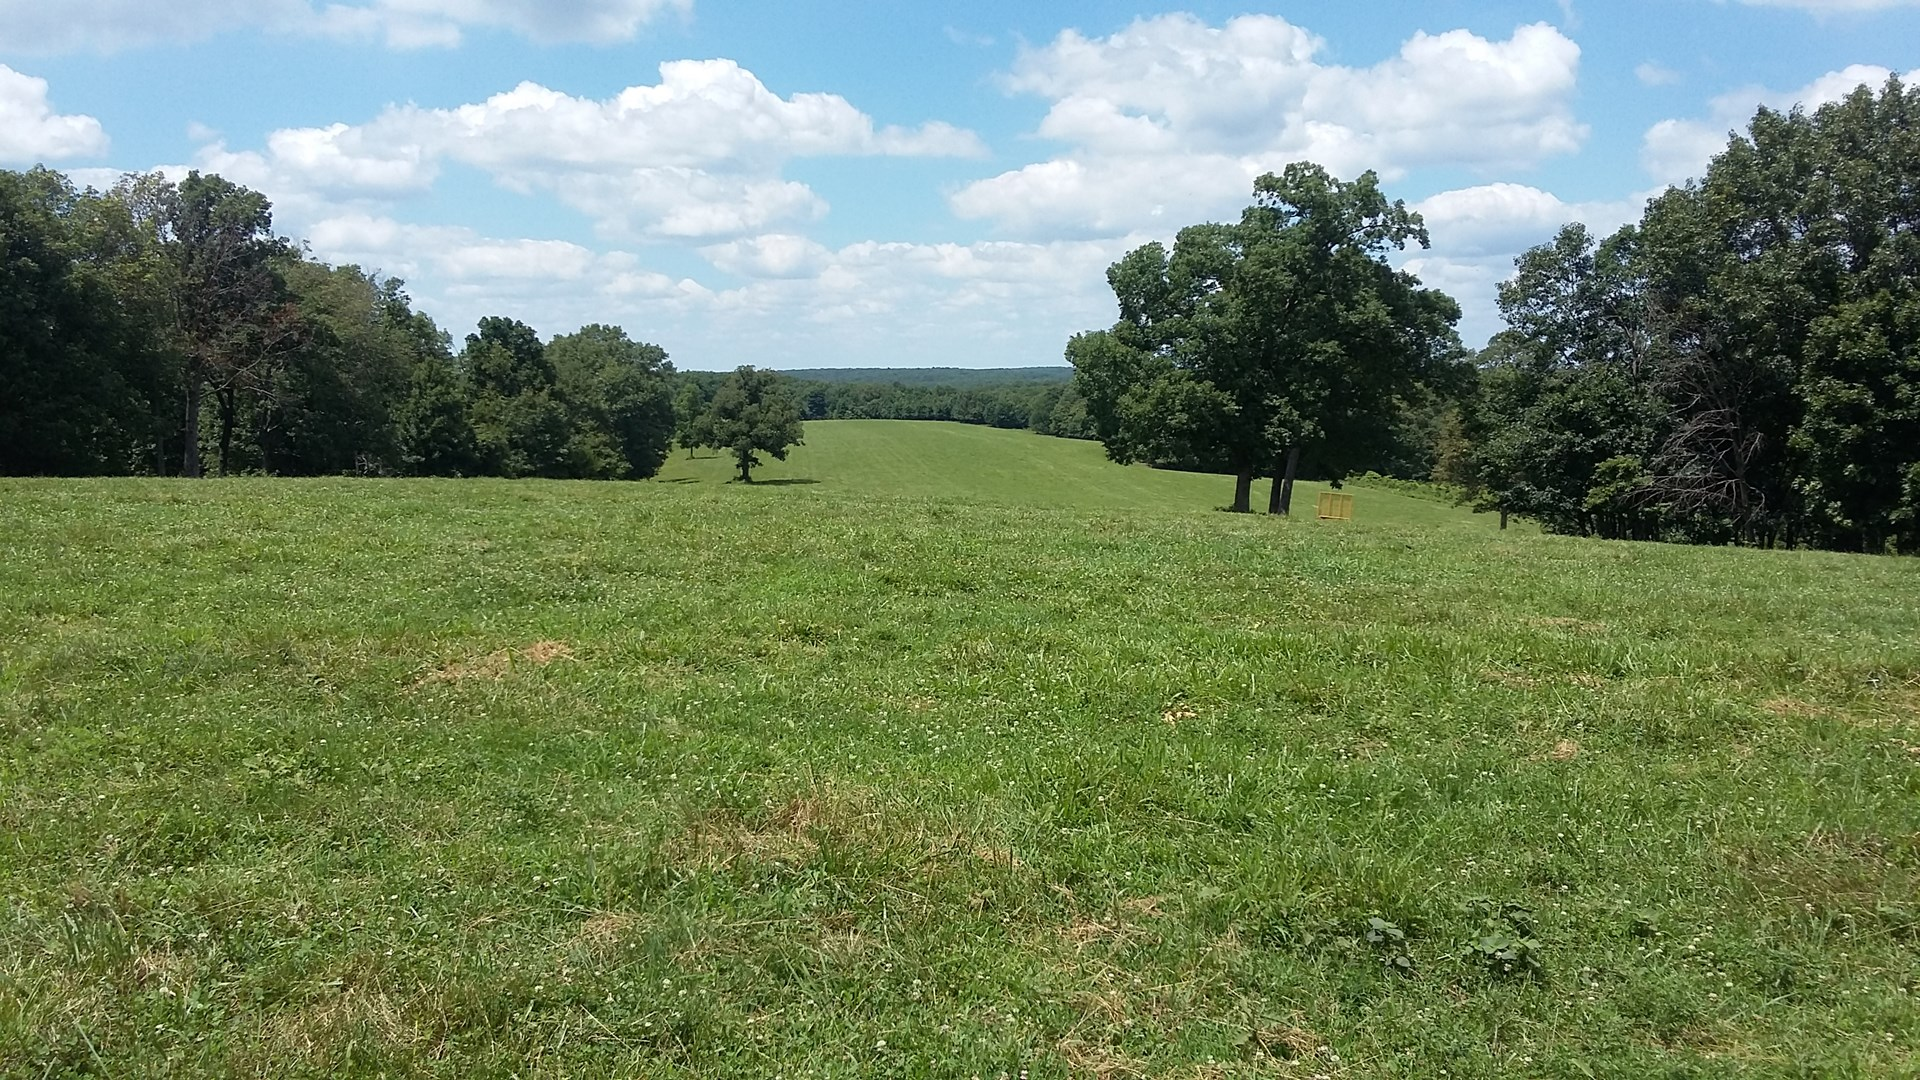 Hunting land for sale in Missouri! 200-acre cattle ranch/